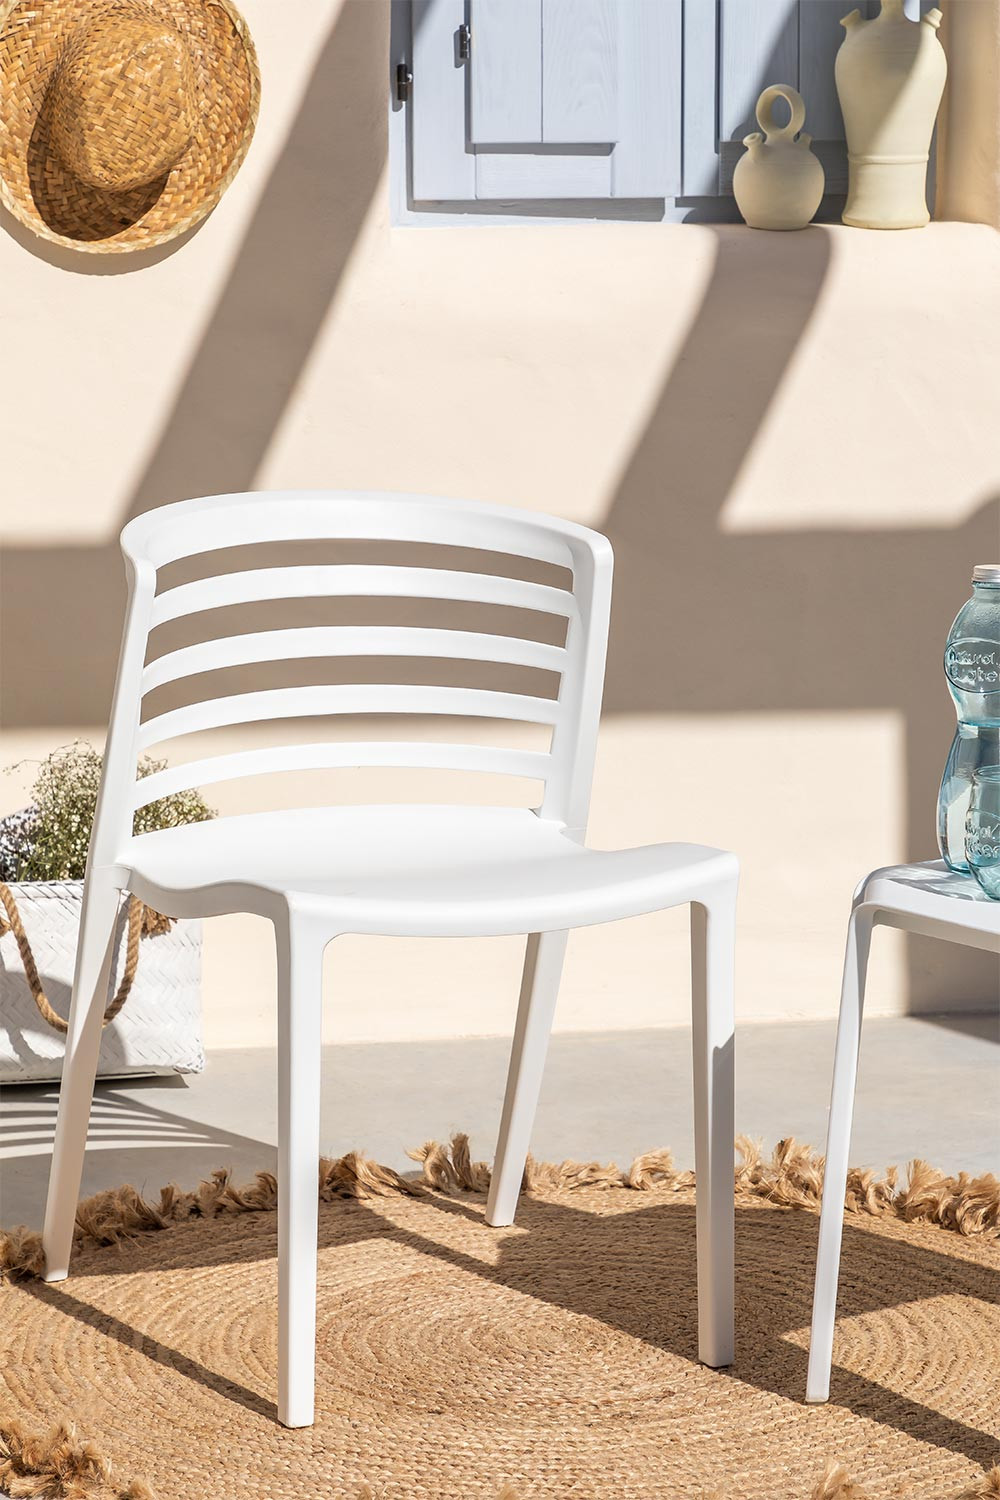 Pack of 4 Mauz Chairs, gallery image 1